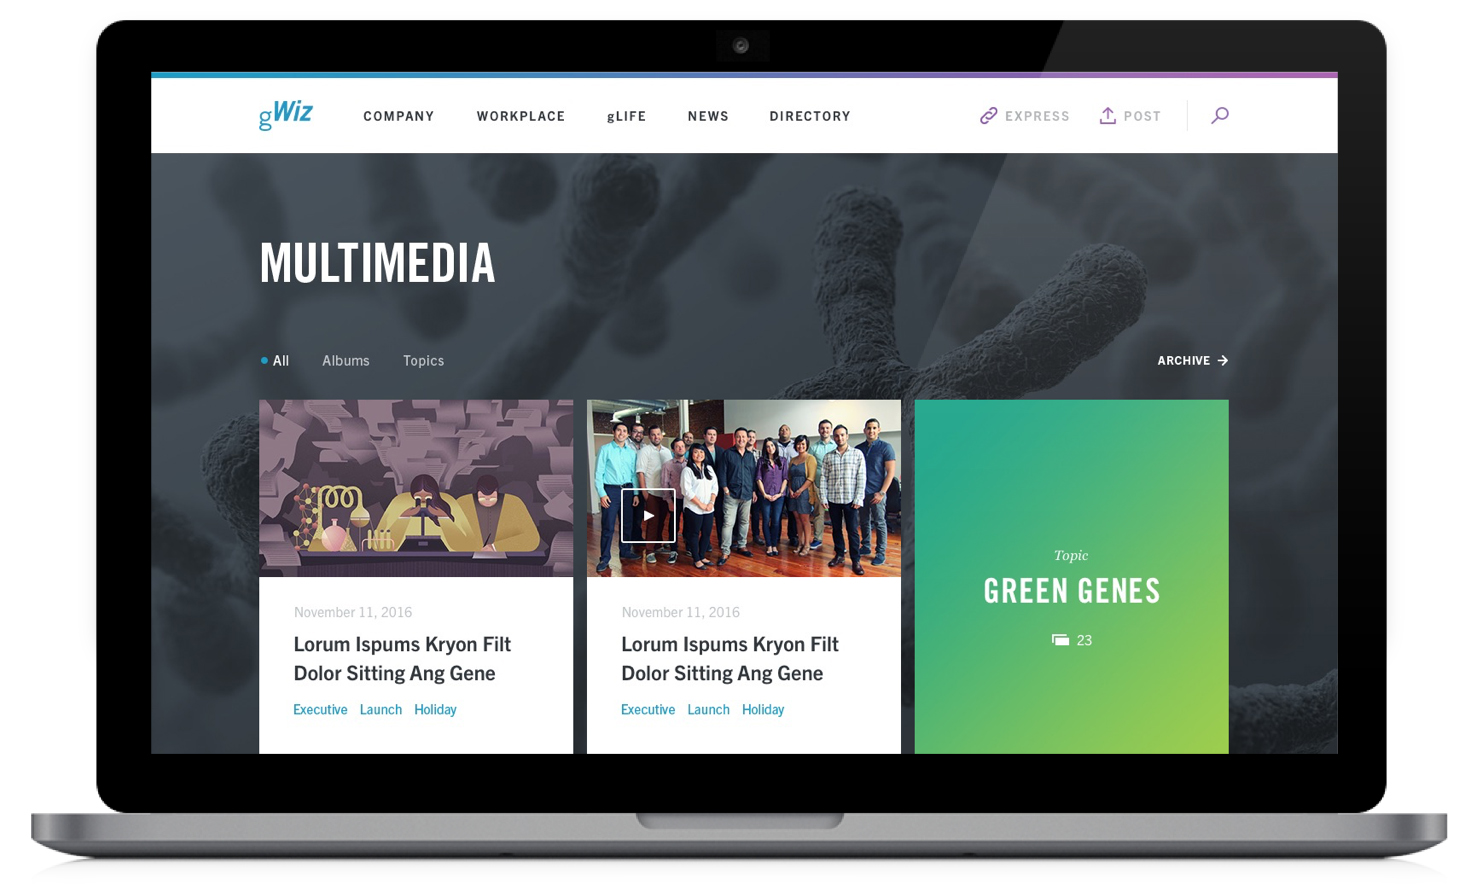 Genentech Intranet Redesign - Unifying and streamlining an all-inclusive intranet.